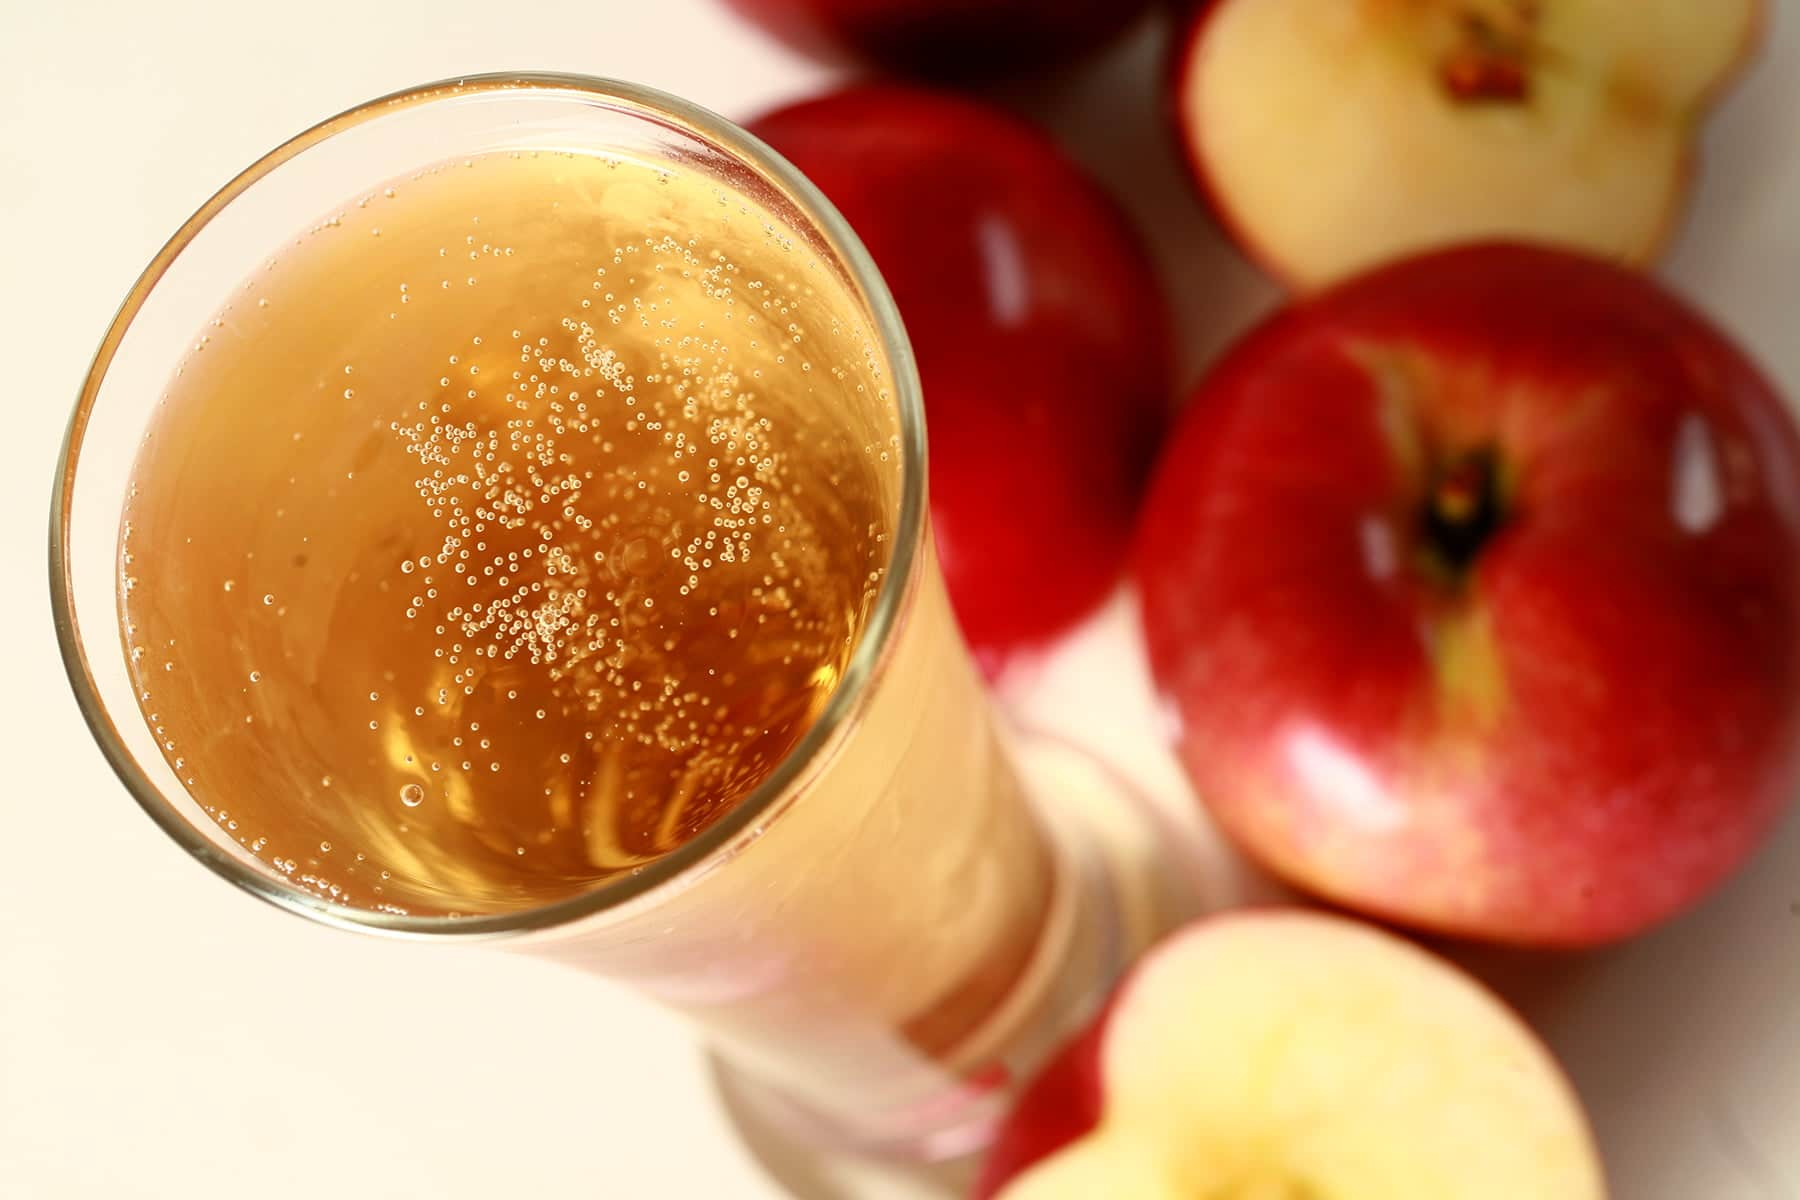 Close of view of a glass of homemade hard apple cider, surrounded by red apples.